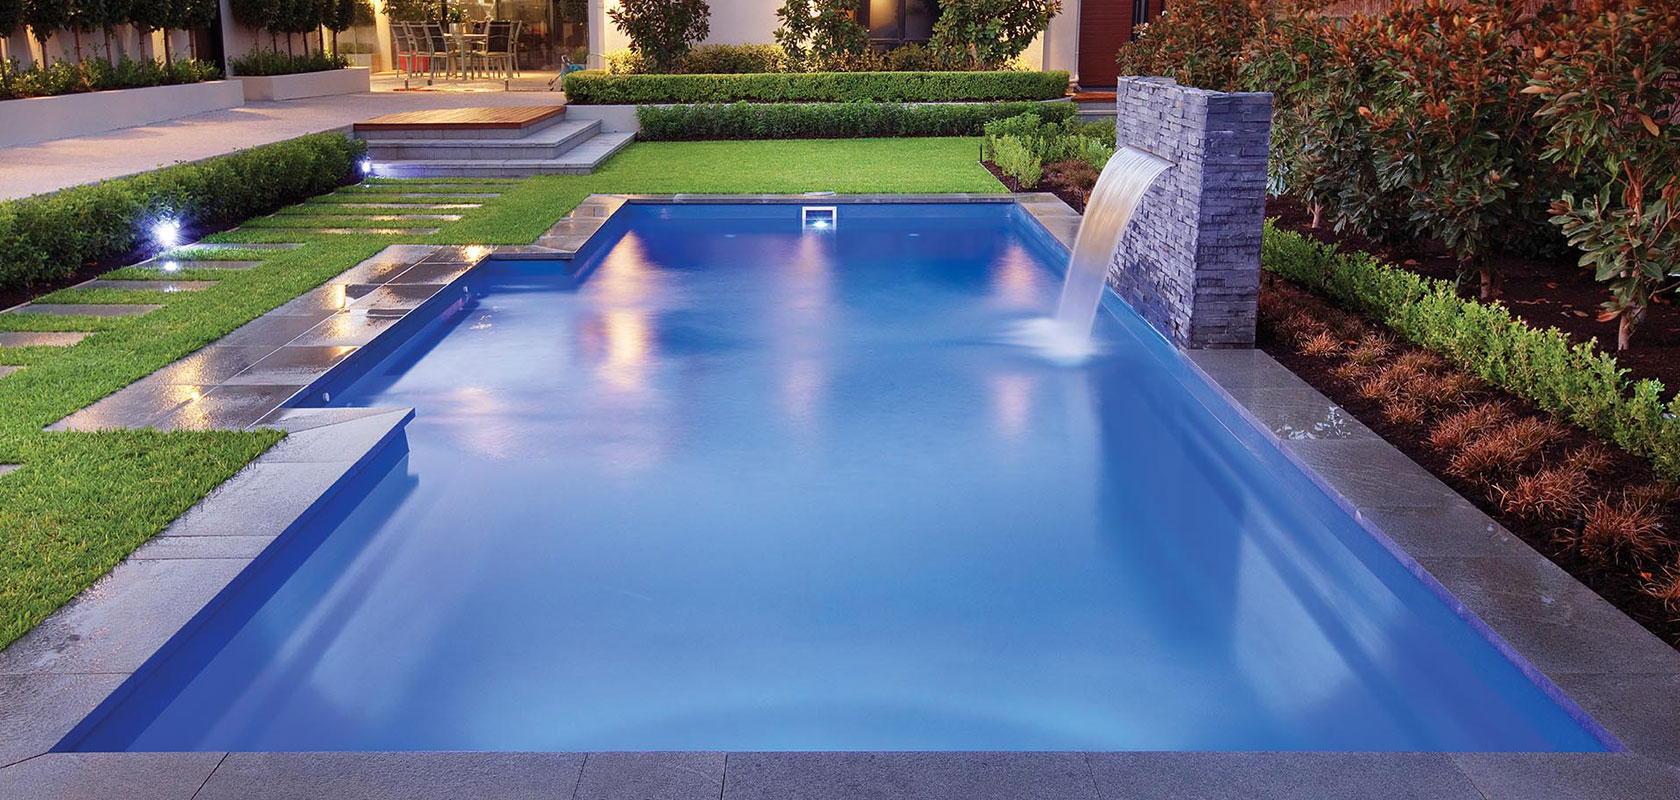 <h1>Fibreglass Pools are Quick & Easy to Install</h1><p>Installed in 4 to 5 days, traditional pools take 6 to 8 weeks</p>